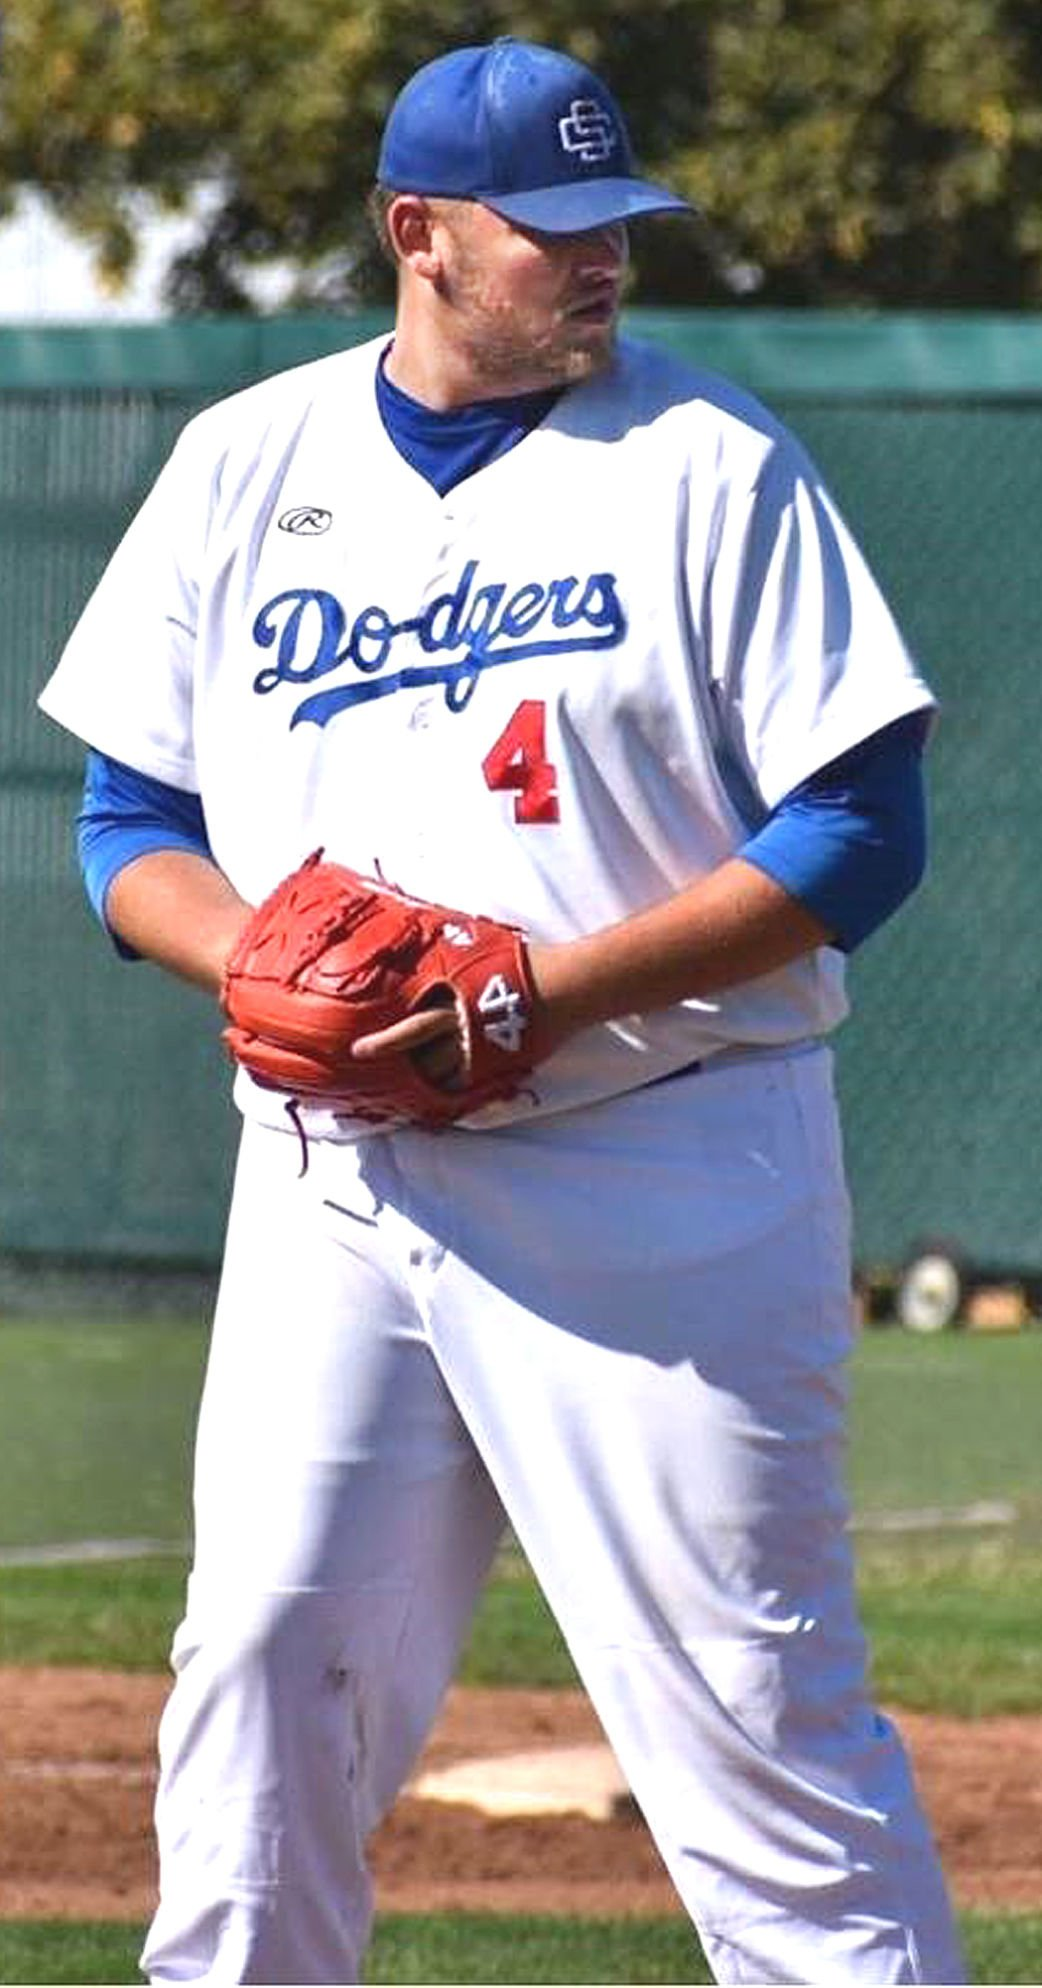 Conner Ashworth pitches for Spokane Dodgers